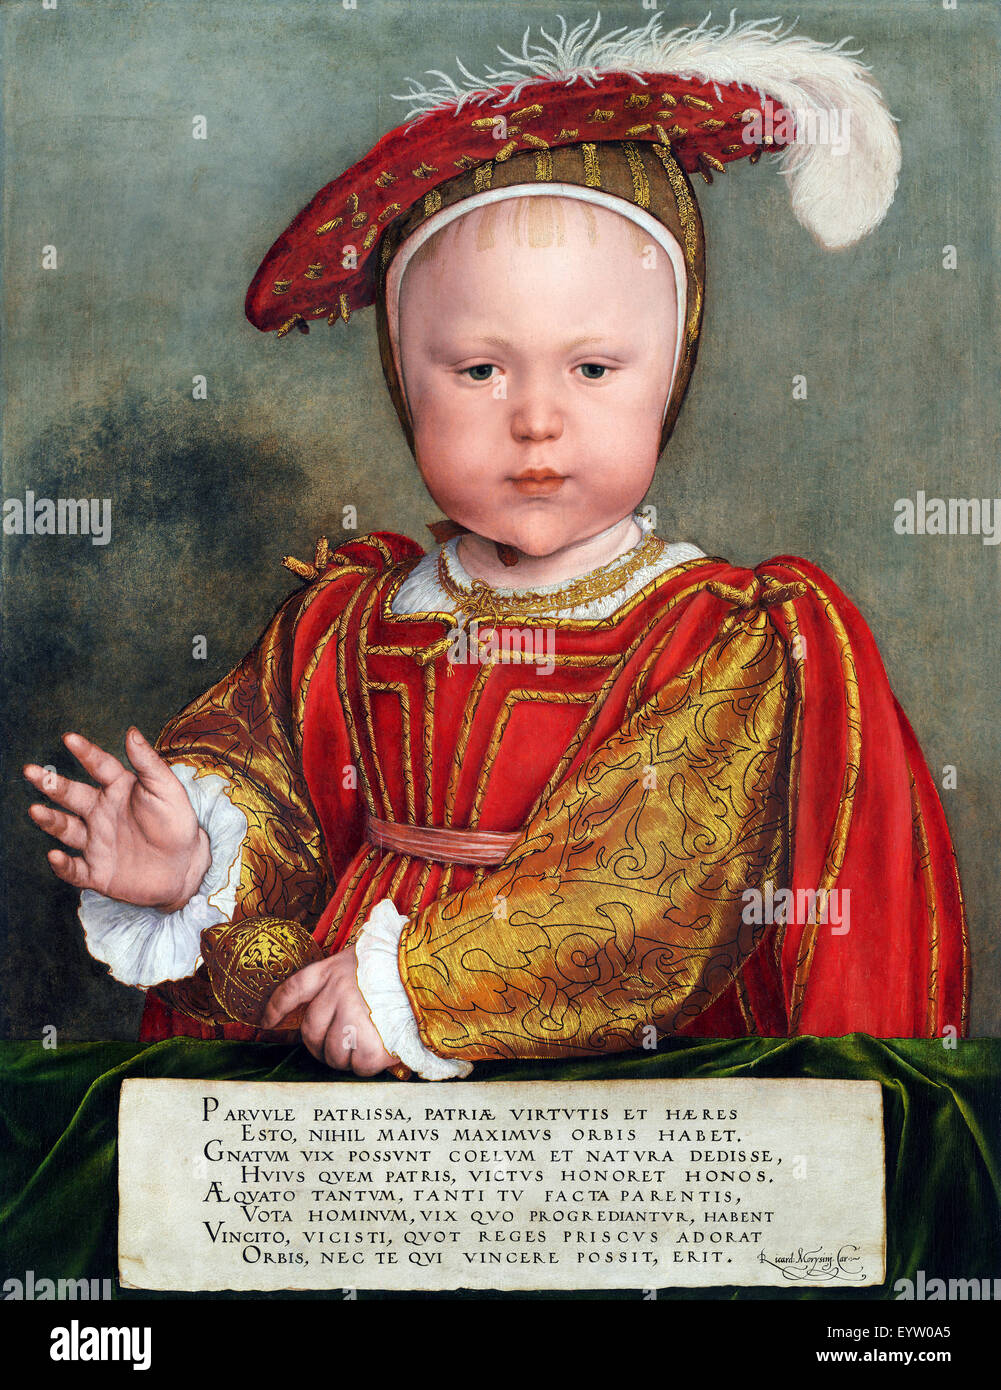 Hans Holbein the Younger, Edward VI as a Child. Circa 1538. Oil on panel. National Gallery of Art, Washington, D.C., - Stock Image